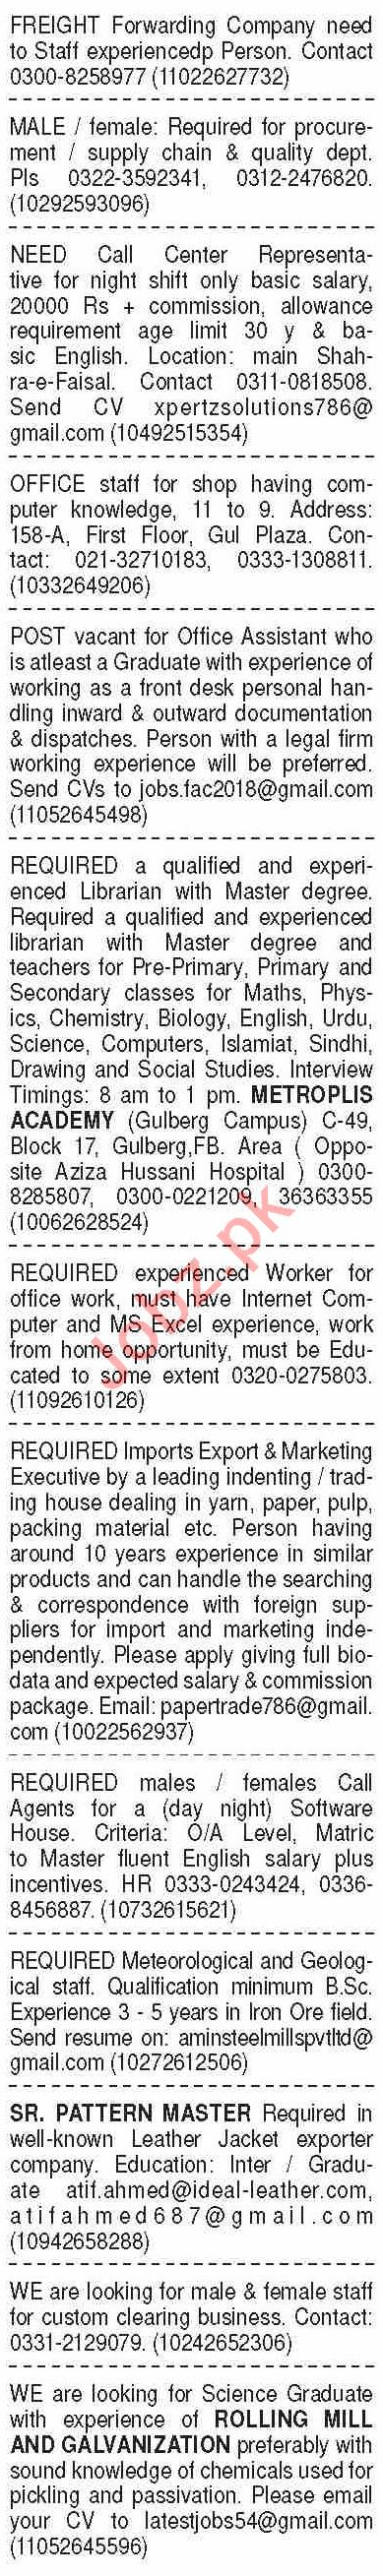 Dawn Sunday Classified Ads 7 March 2021 for General Staff